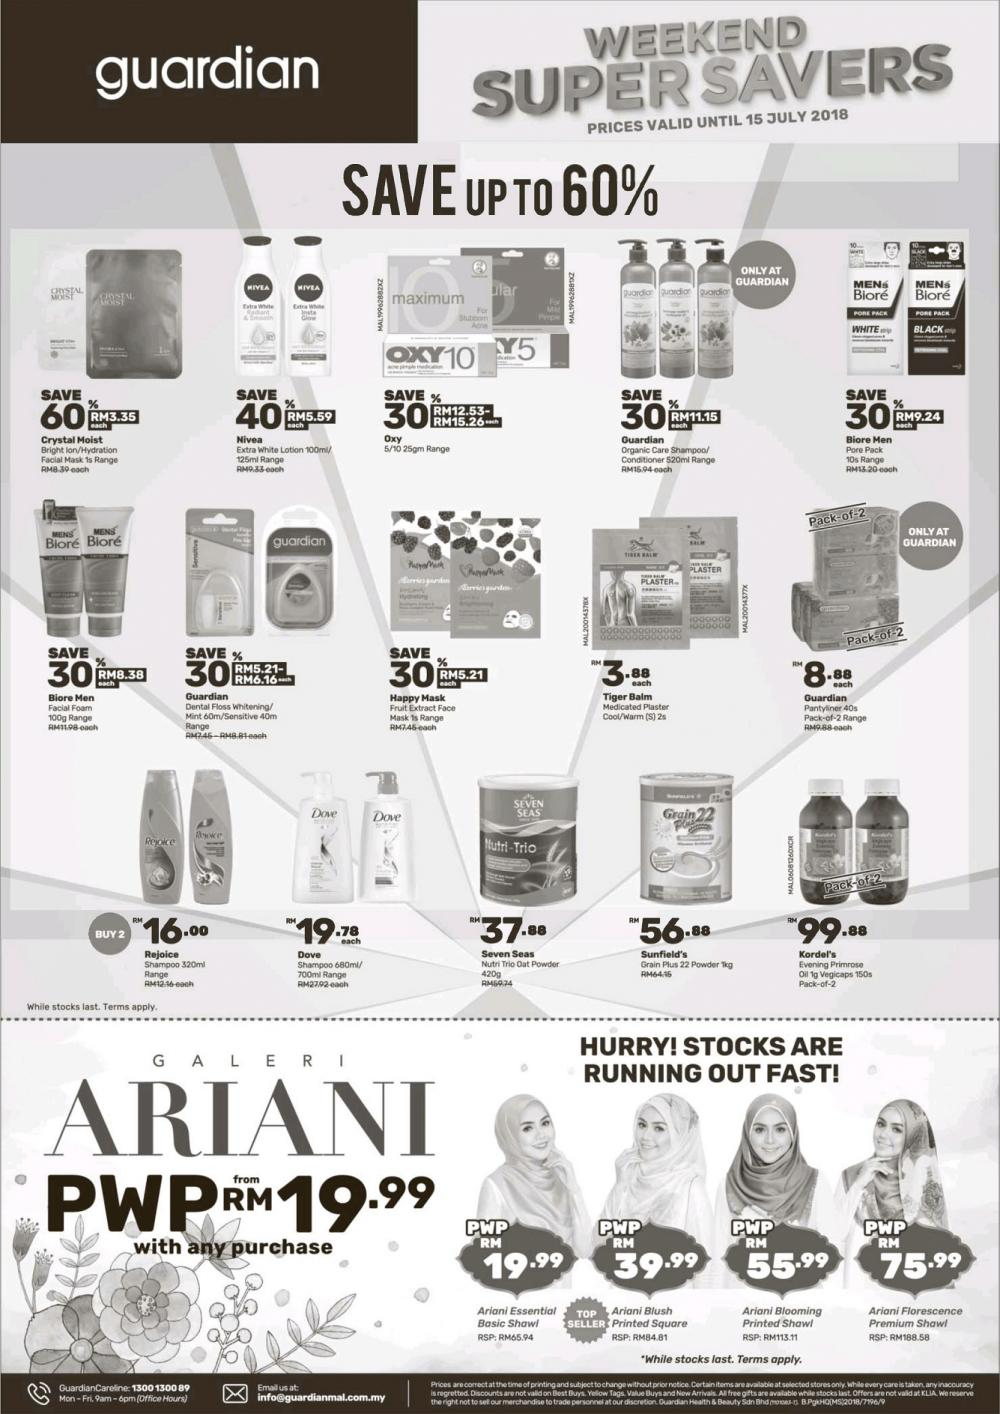 Guardian Weekend Super Savers Promotion Save Up To 60% (12 July 2018 - 15 July 2018)